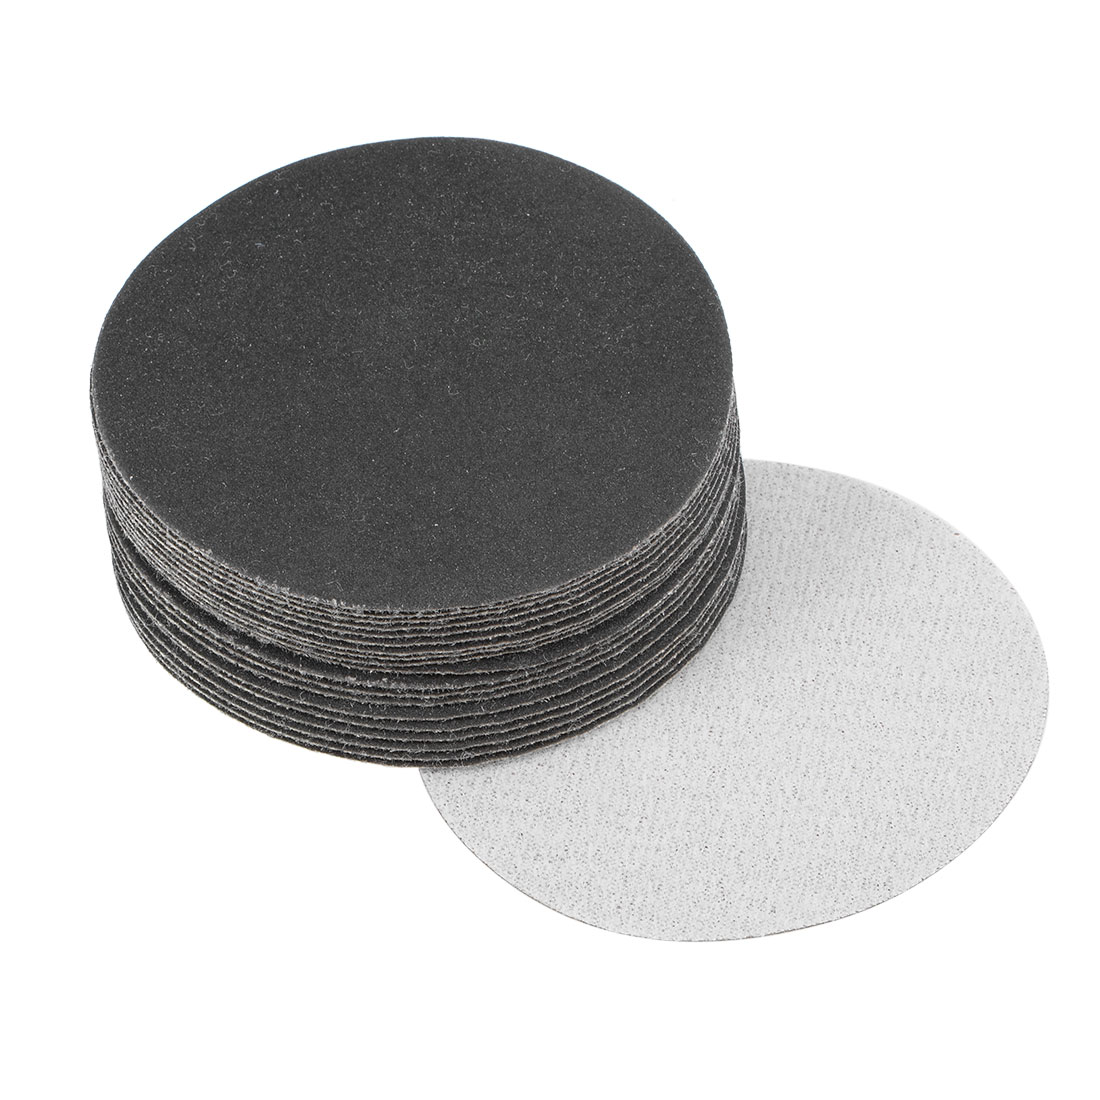 3 inch Wet Dry Discs 320 Grit Hook and Loop Sanding Disc Silicon Carbide 20pcs